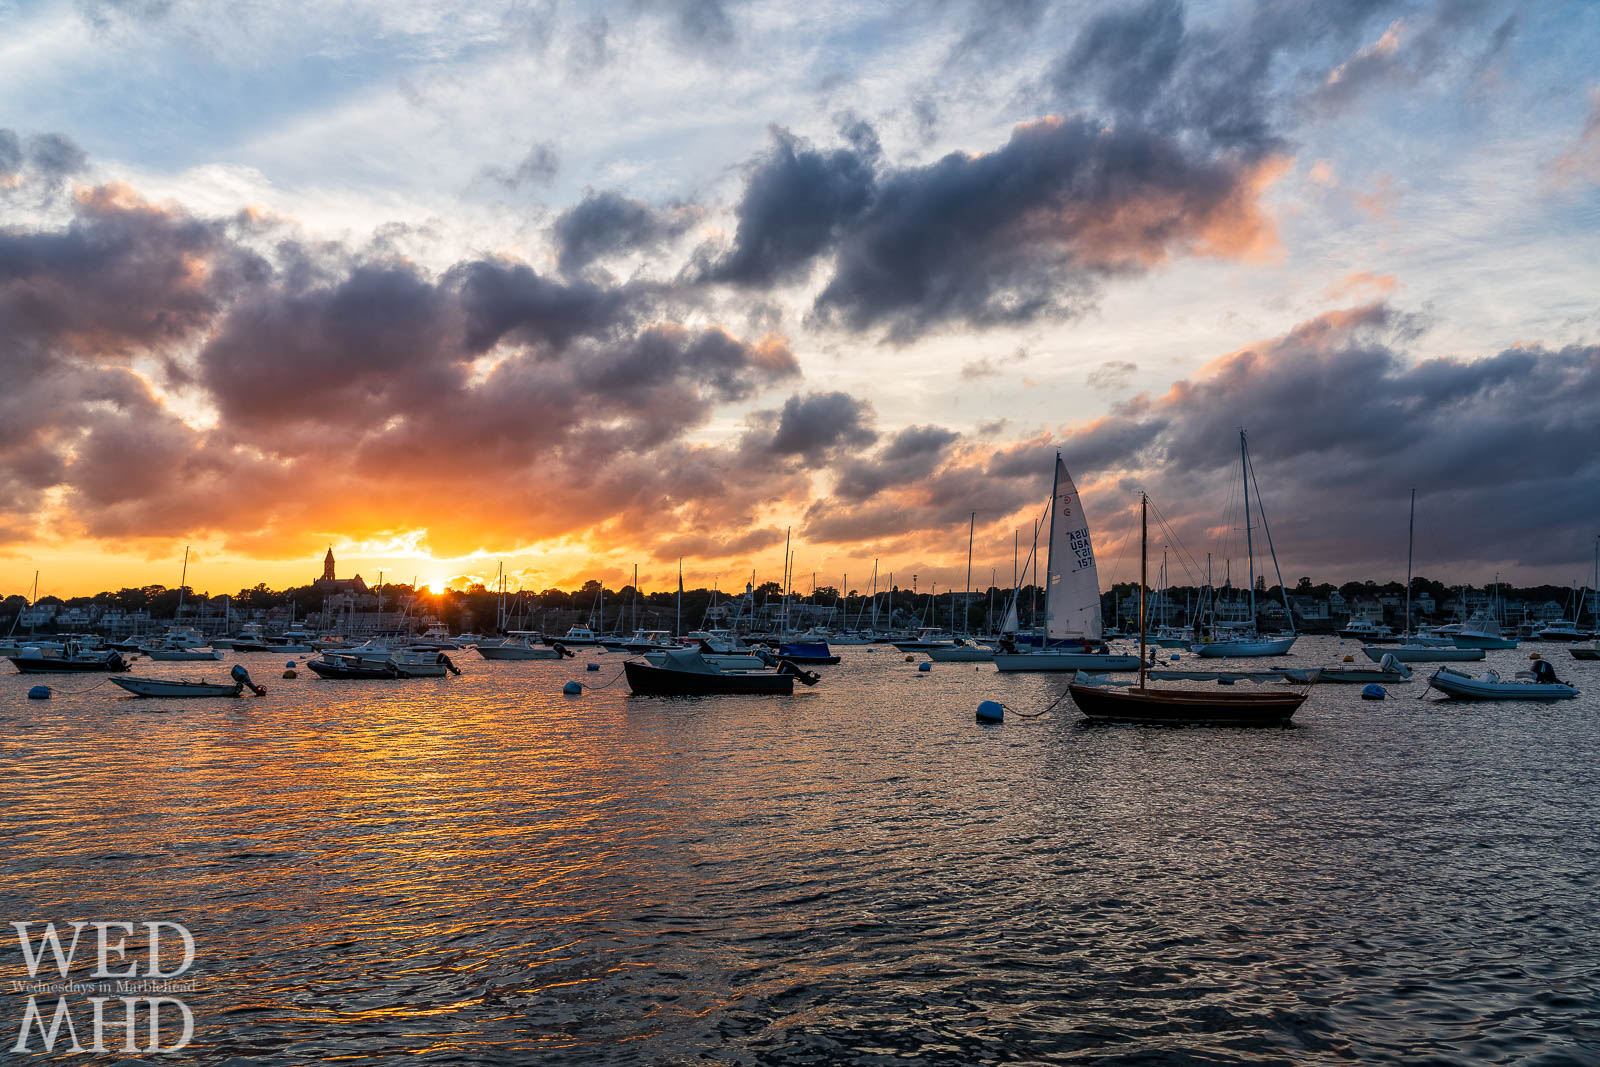 There really is nothing better than a Marblehead sunset - made even more beautiful with a full harbor and a sailboat just reaching its mooring